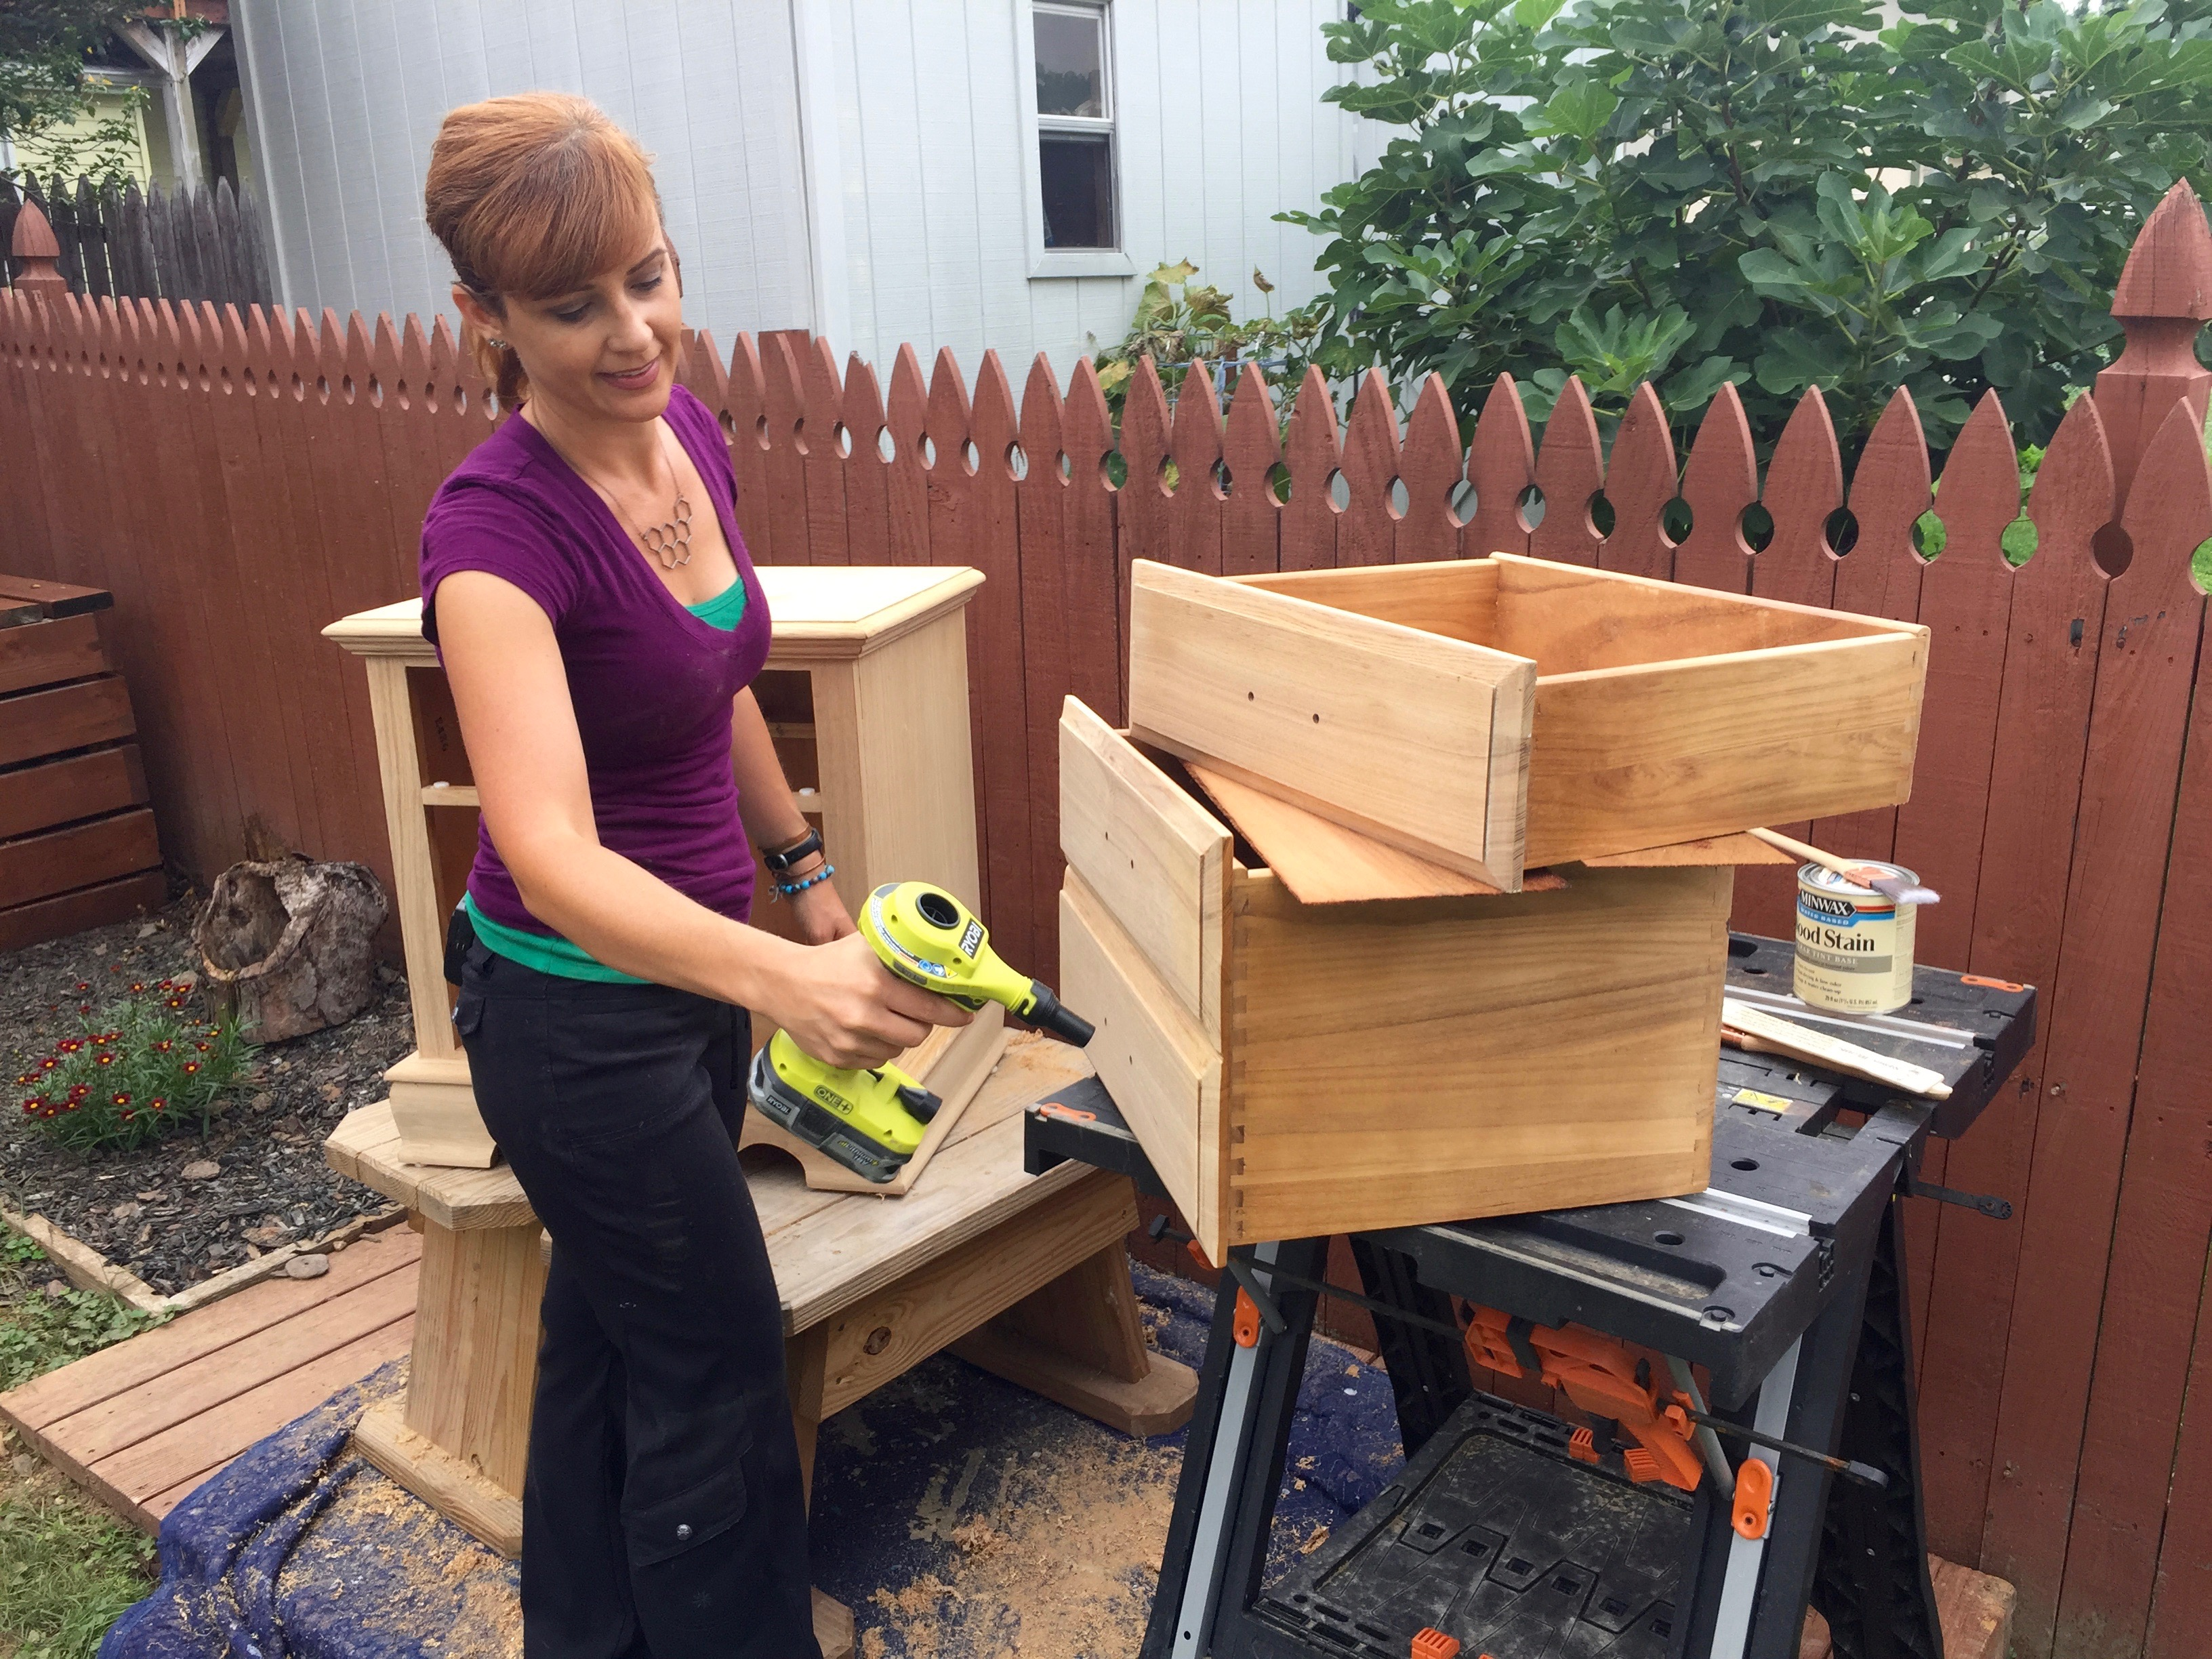 Theresa MyFixitUpLife Habitat Minwax blowing sanding dust